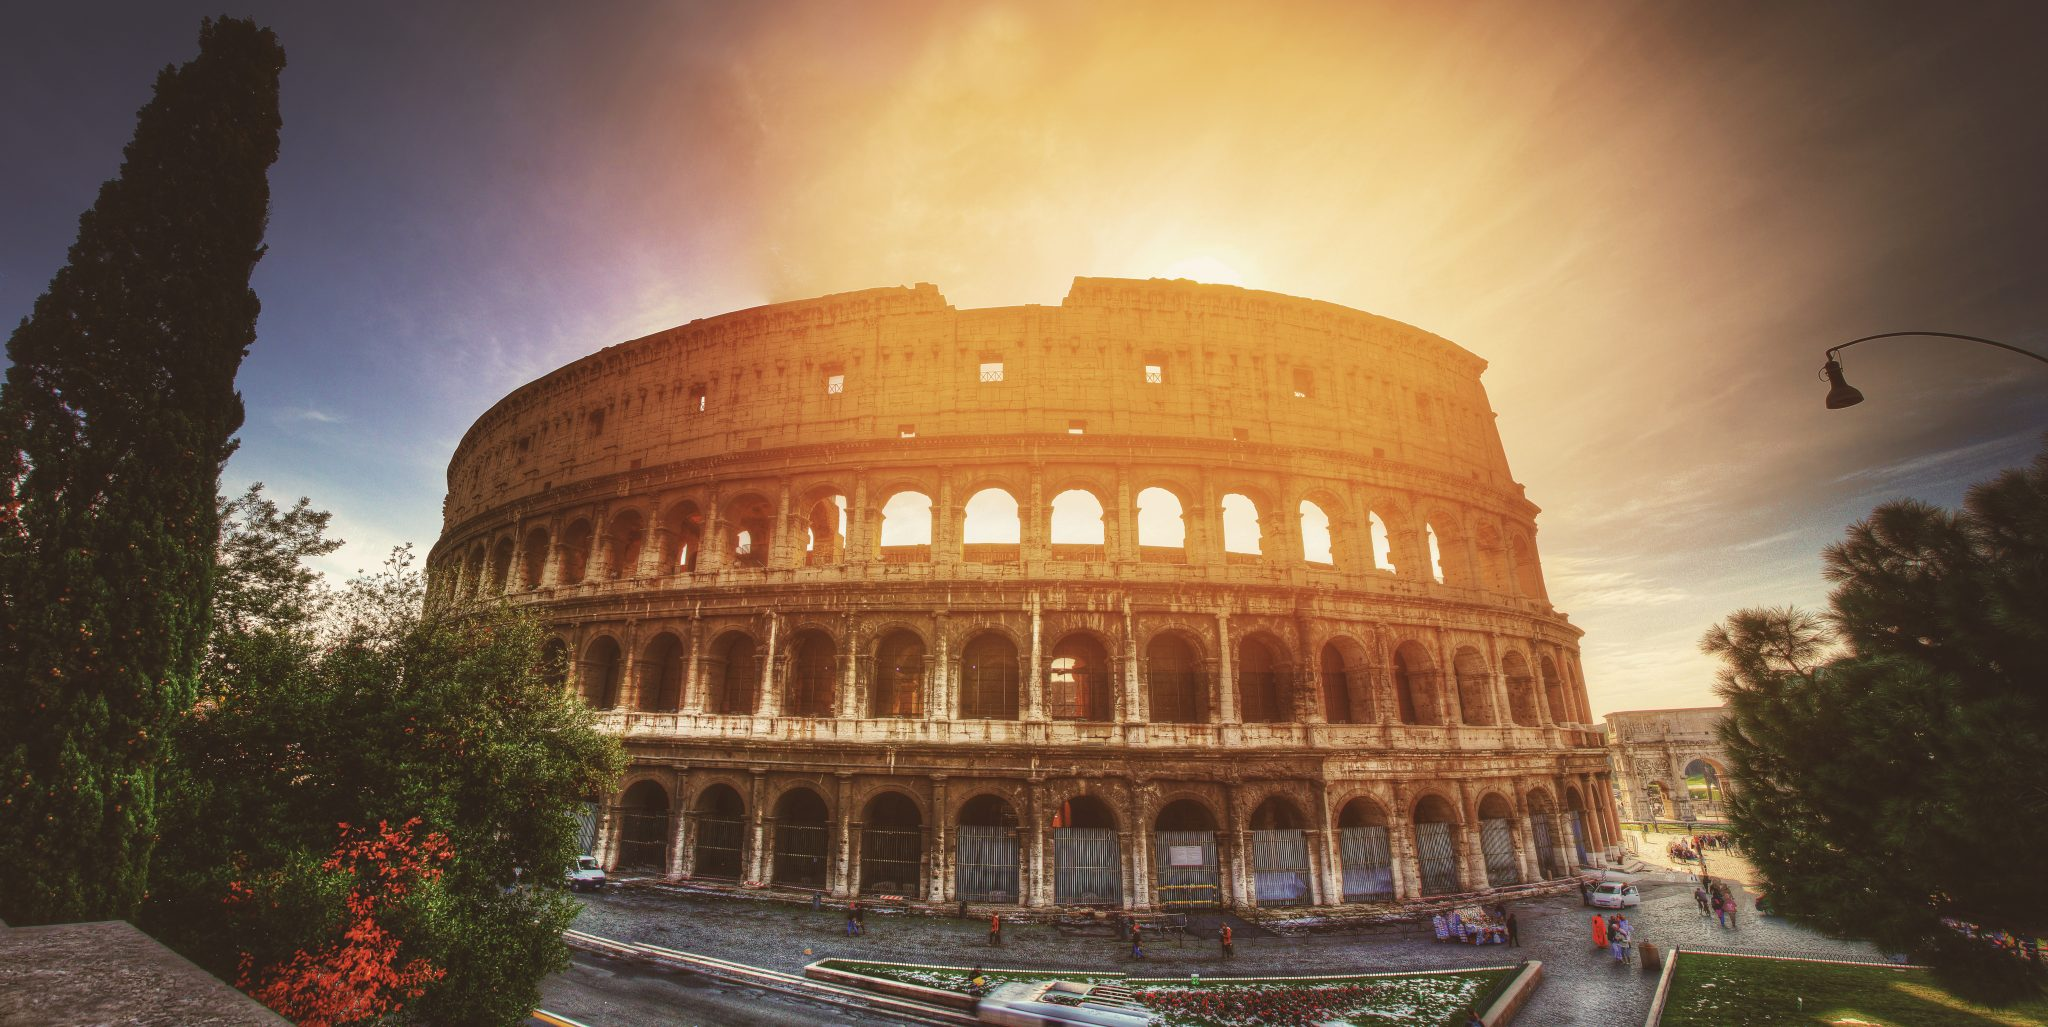 Rome, Italy - colosseum